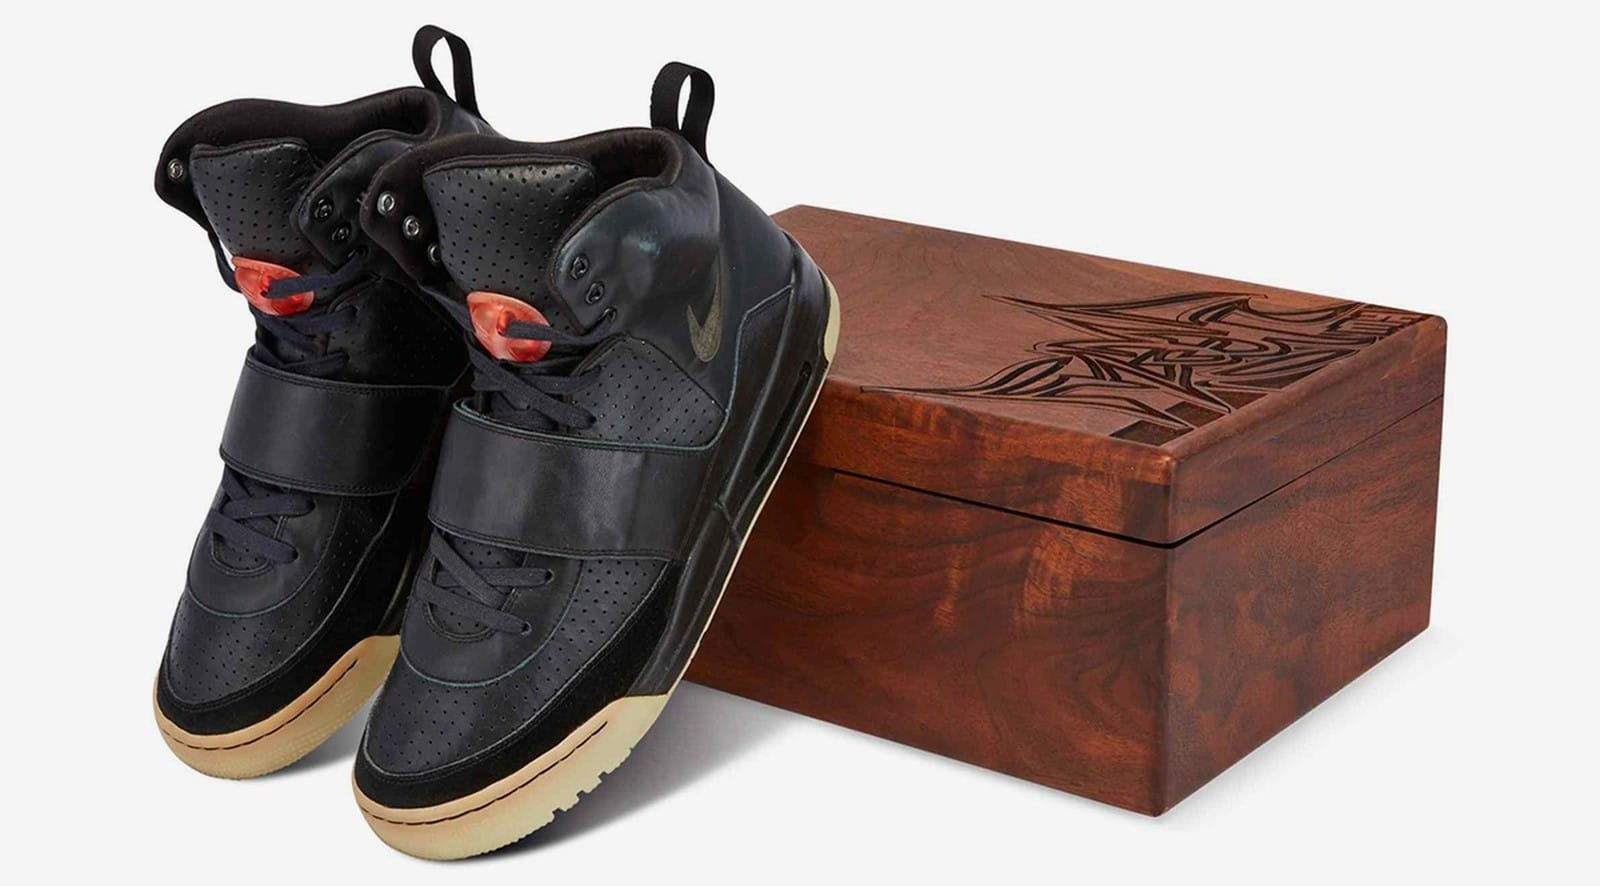 Kanye West's Nike Air Yeezy Prototype is going on sale for over $1 million 15